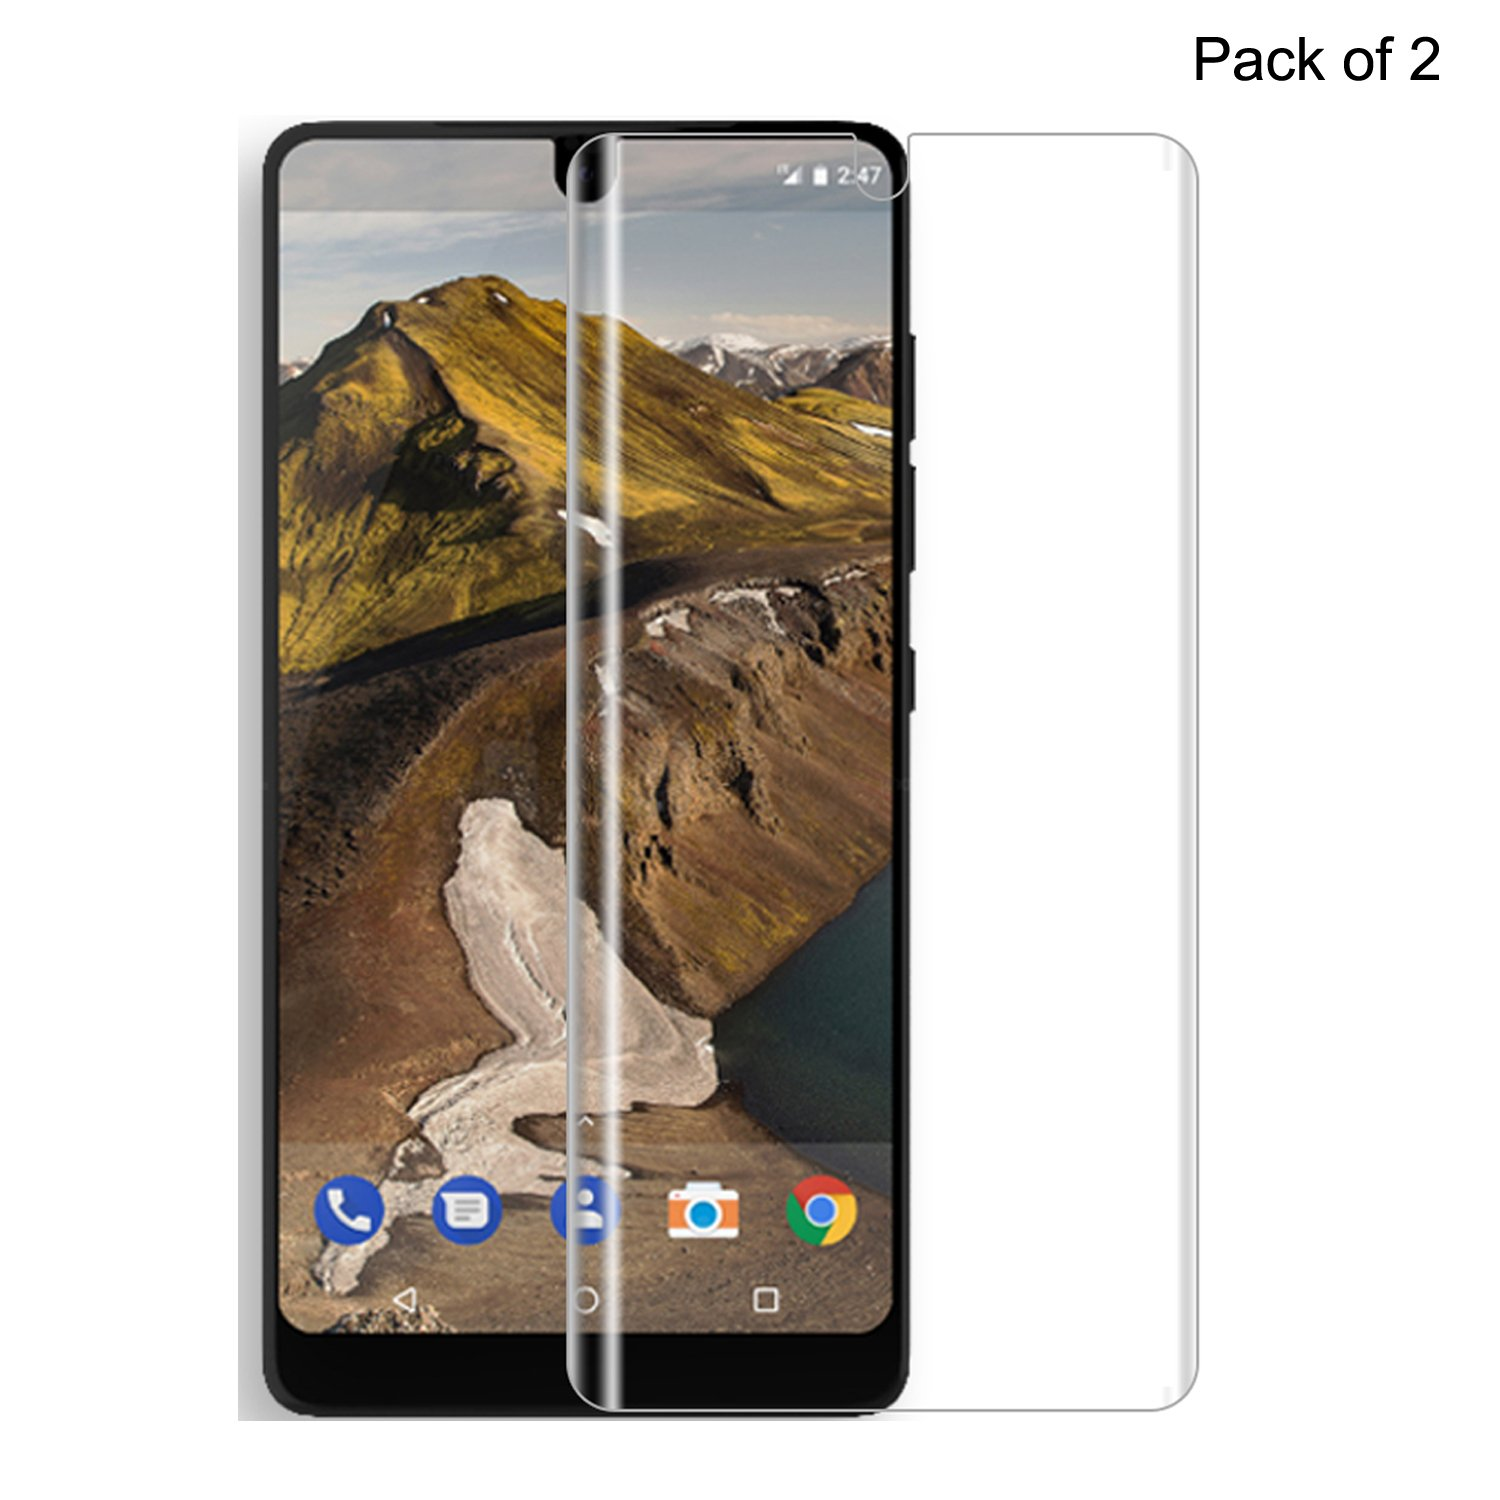 Essential Phone PH-1 Screen Protector Updated,Avesfer Film Ultra-Clear Ultra Slim 2.5D Round Edge Protective Screen Film,Scratch Resistant Bubble Free Pack of 2